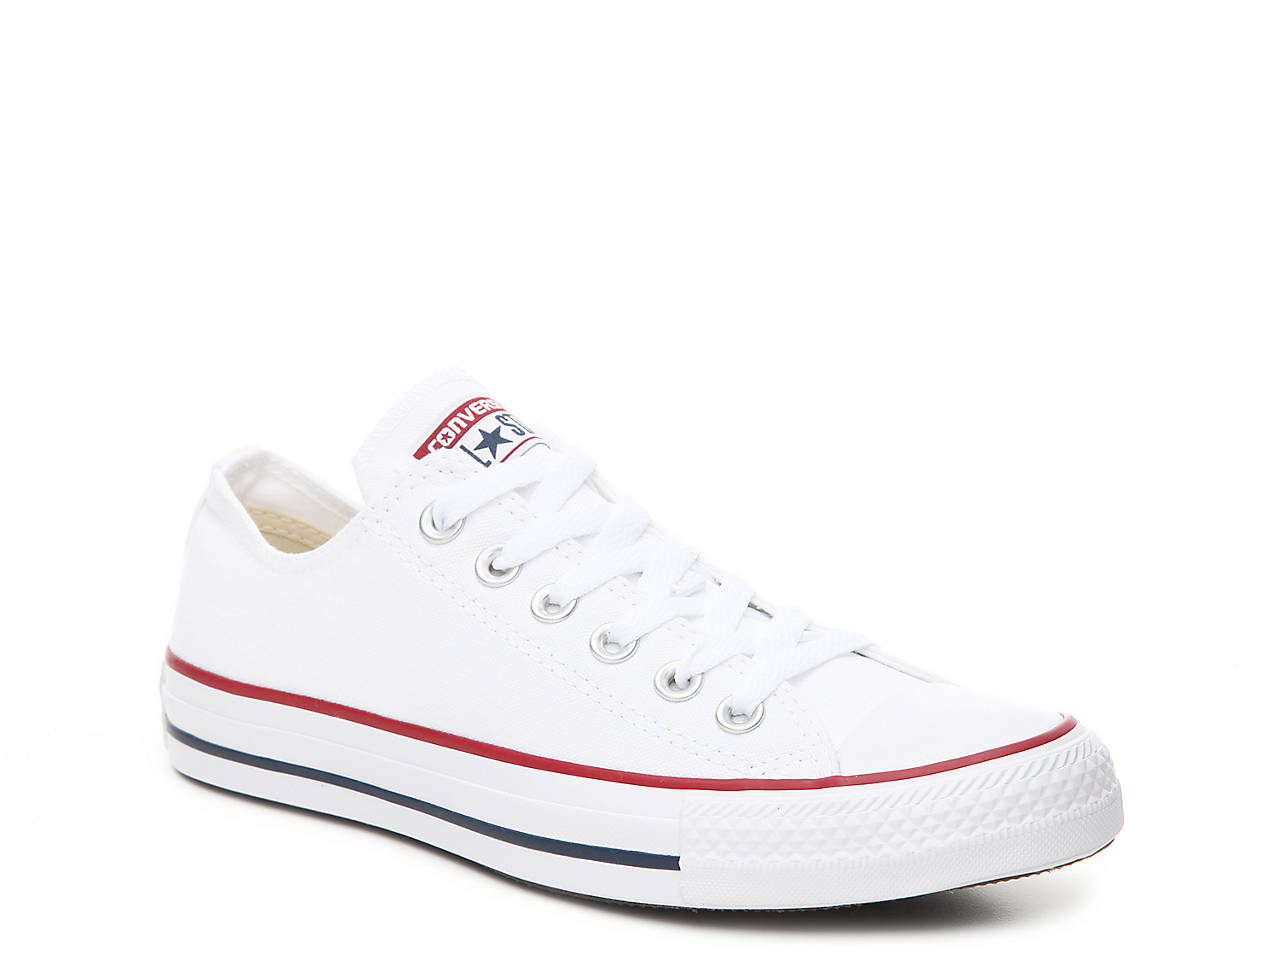 d2829d329f5 Converse Chuck Taylor All Star Sneaker - Women s Women s Shoes